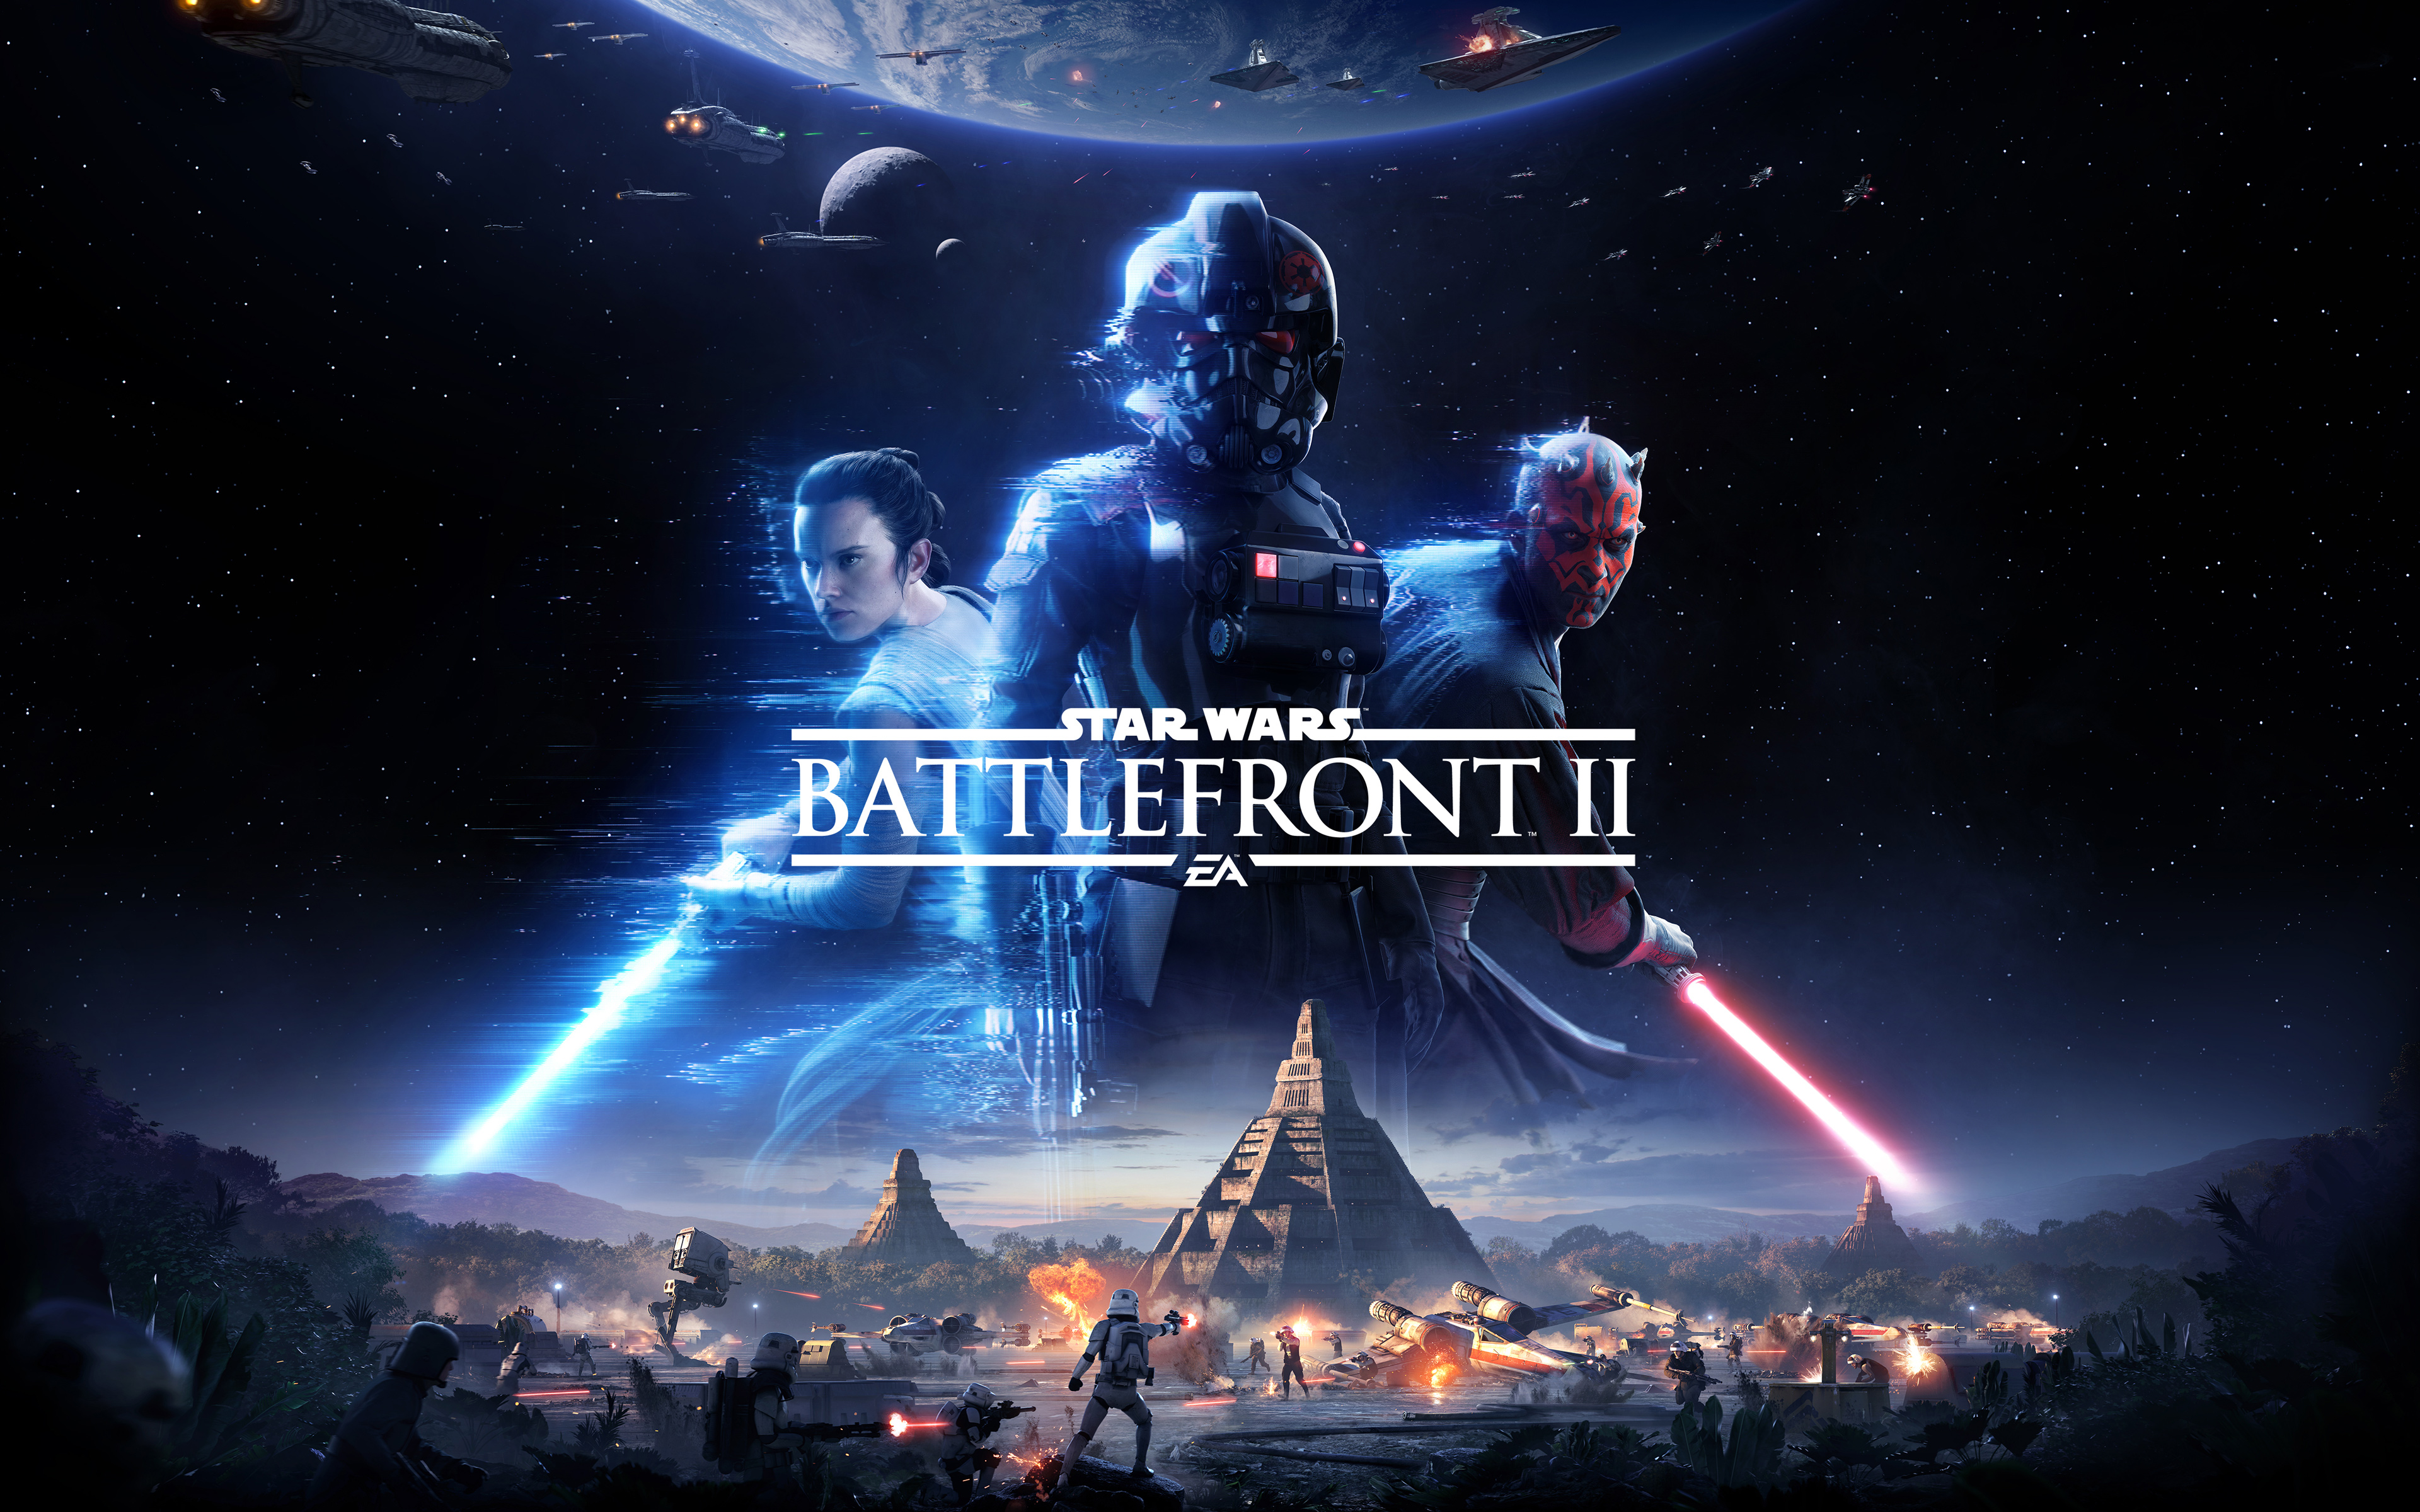 Star wars battlefront ii 5k. обои скачать